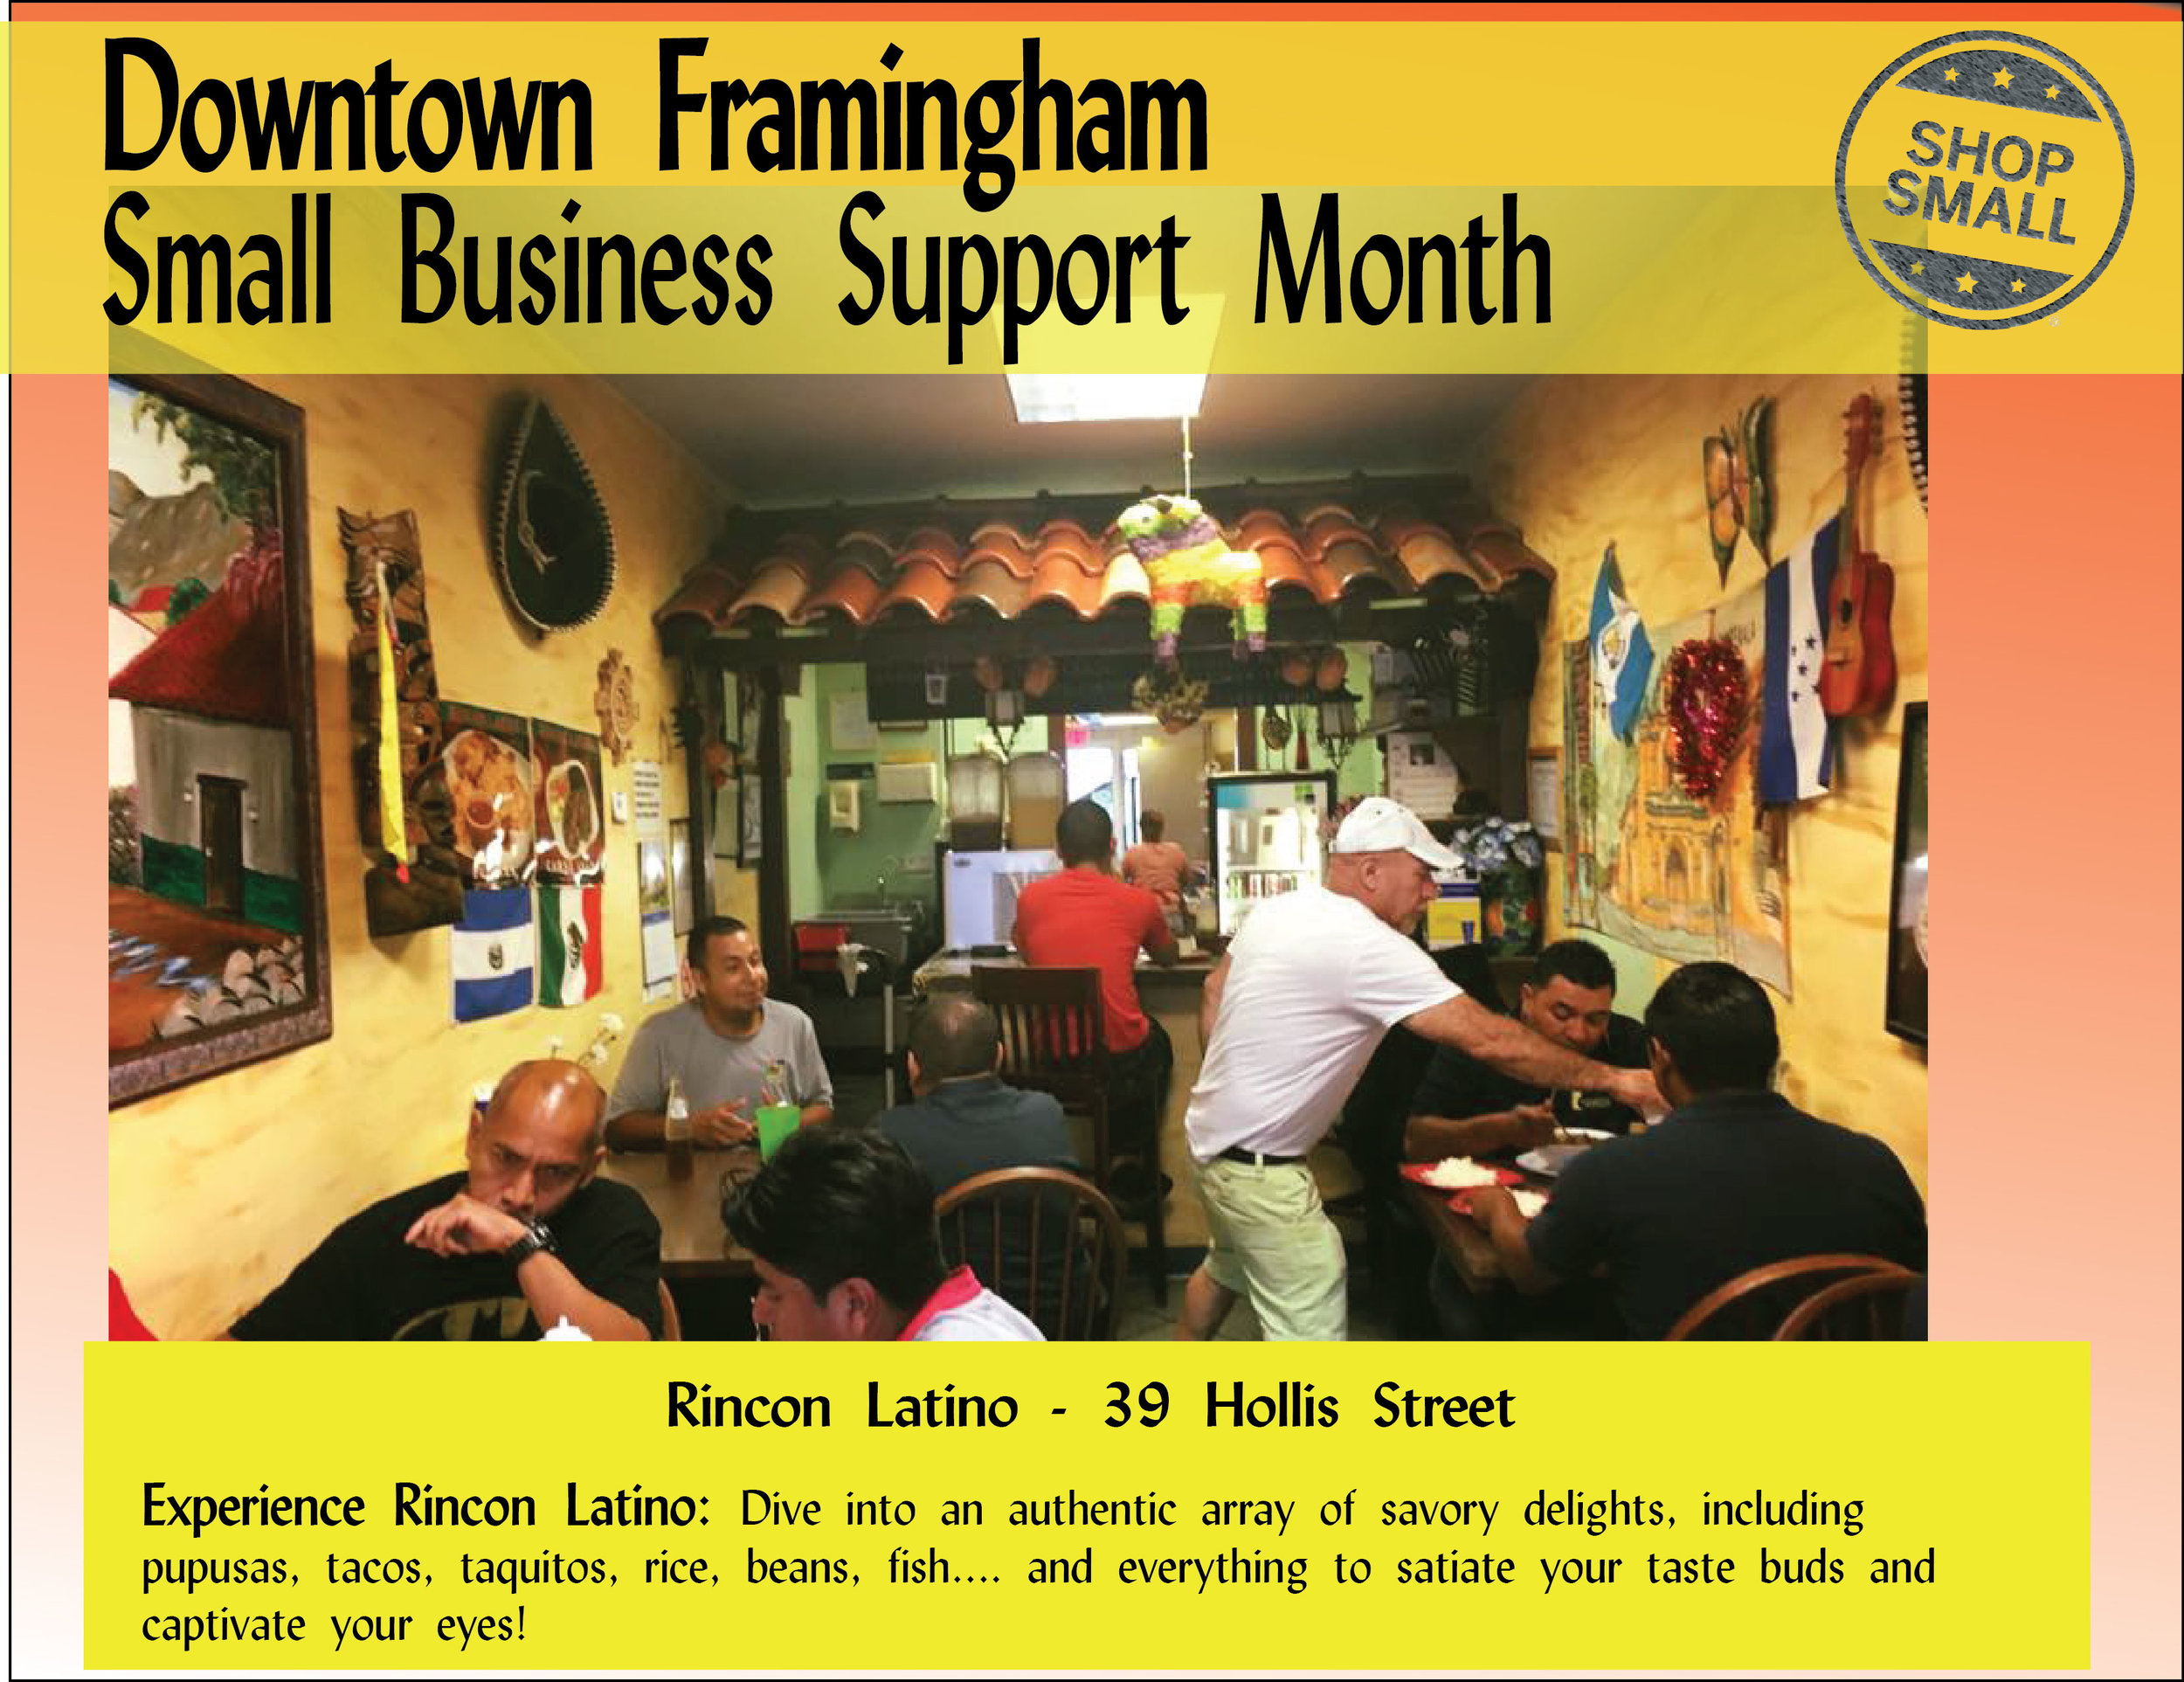 """It's Day 4 of Small Business Support Month! Reason #4 to shop small:  """"Shopping at one local business helps other local businesses. By shopping at a business in the neighborhood, you'll most likely stop by other independent retailers in the vicinity and create a ripple effect on the entire local economy."""""""